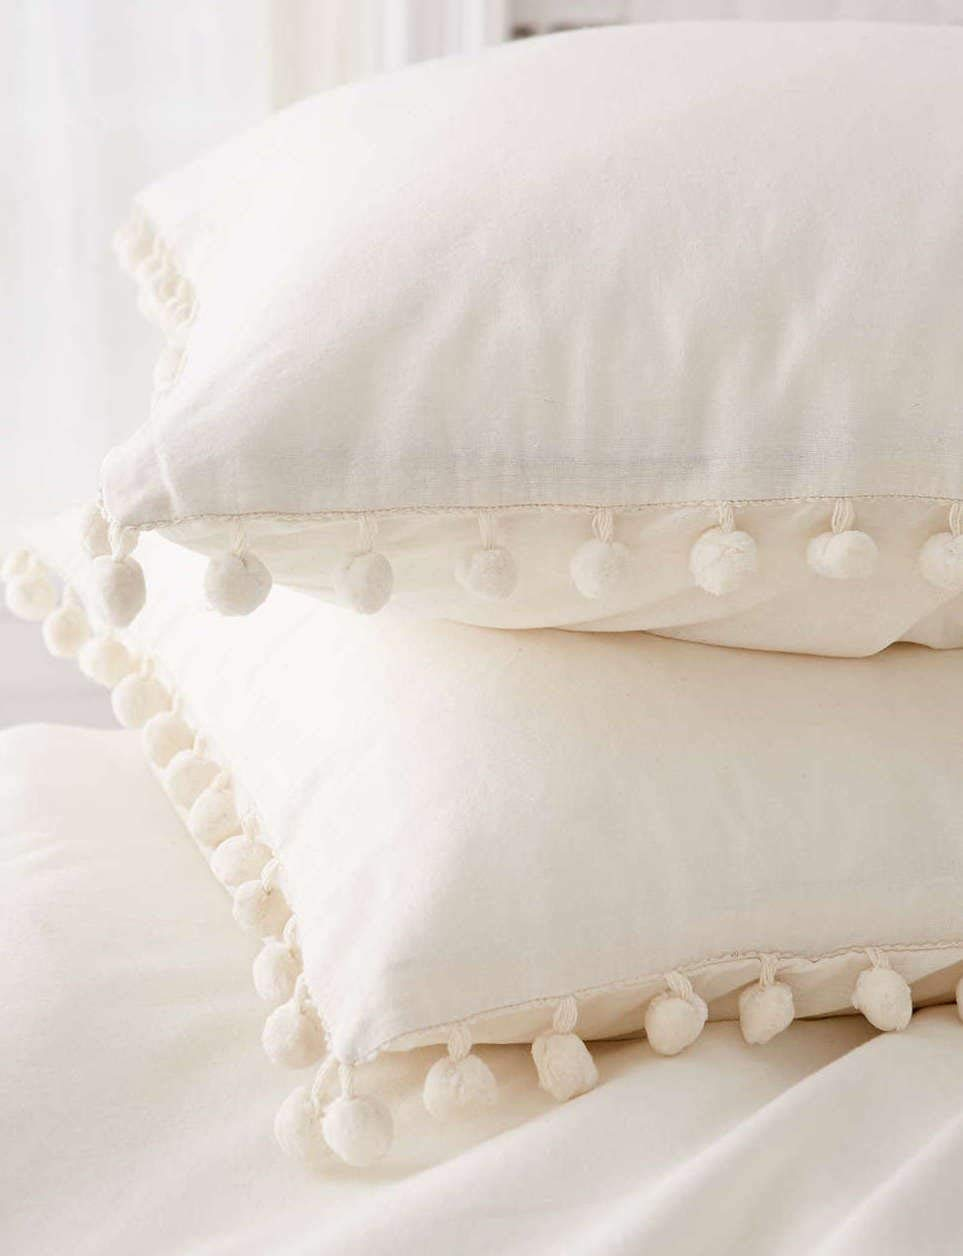 White Pom Pom Fringed Pillowcases Pillow Covers,19.7in x35.5in,Set of 2 (King)